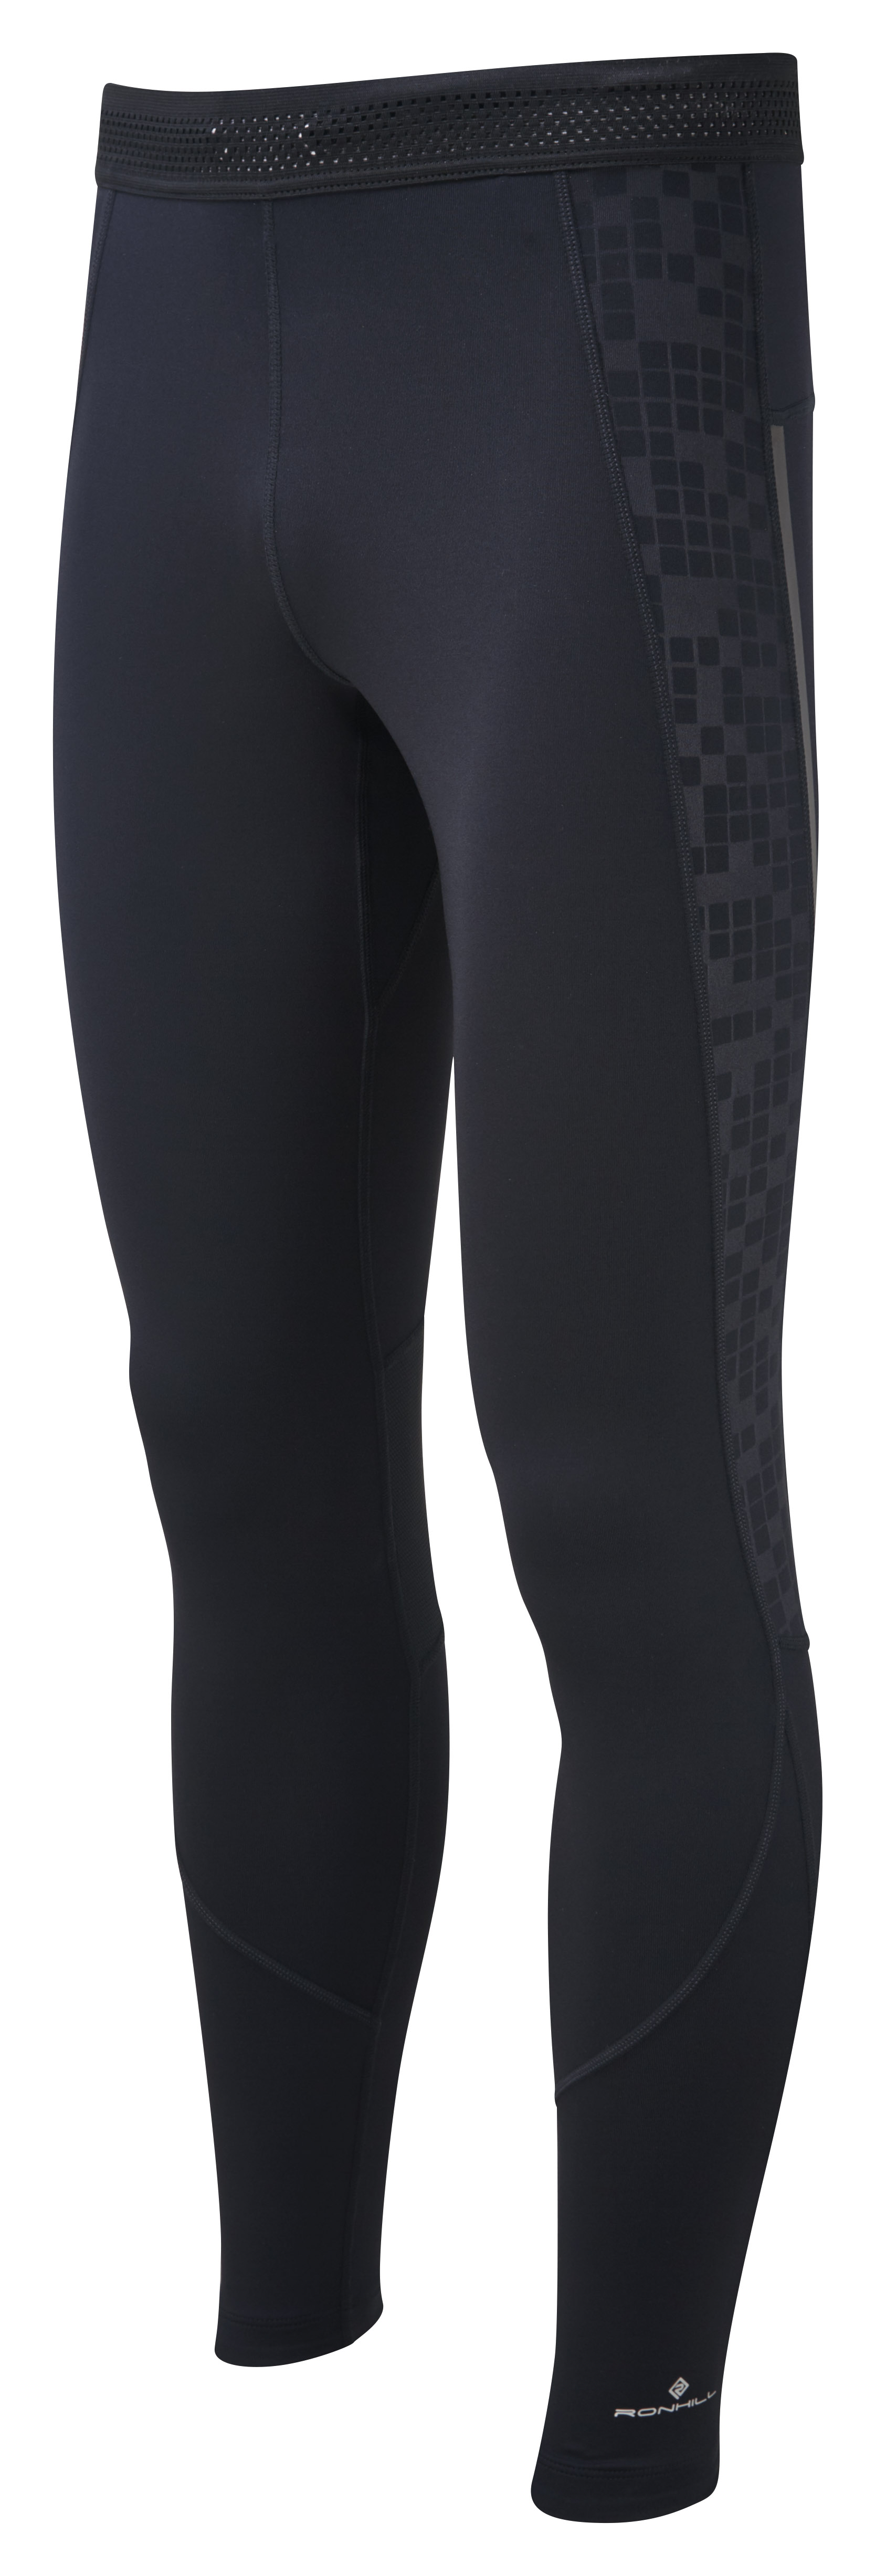 Ronhill Womens Stride Stretch Tights SS18